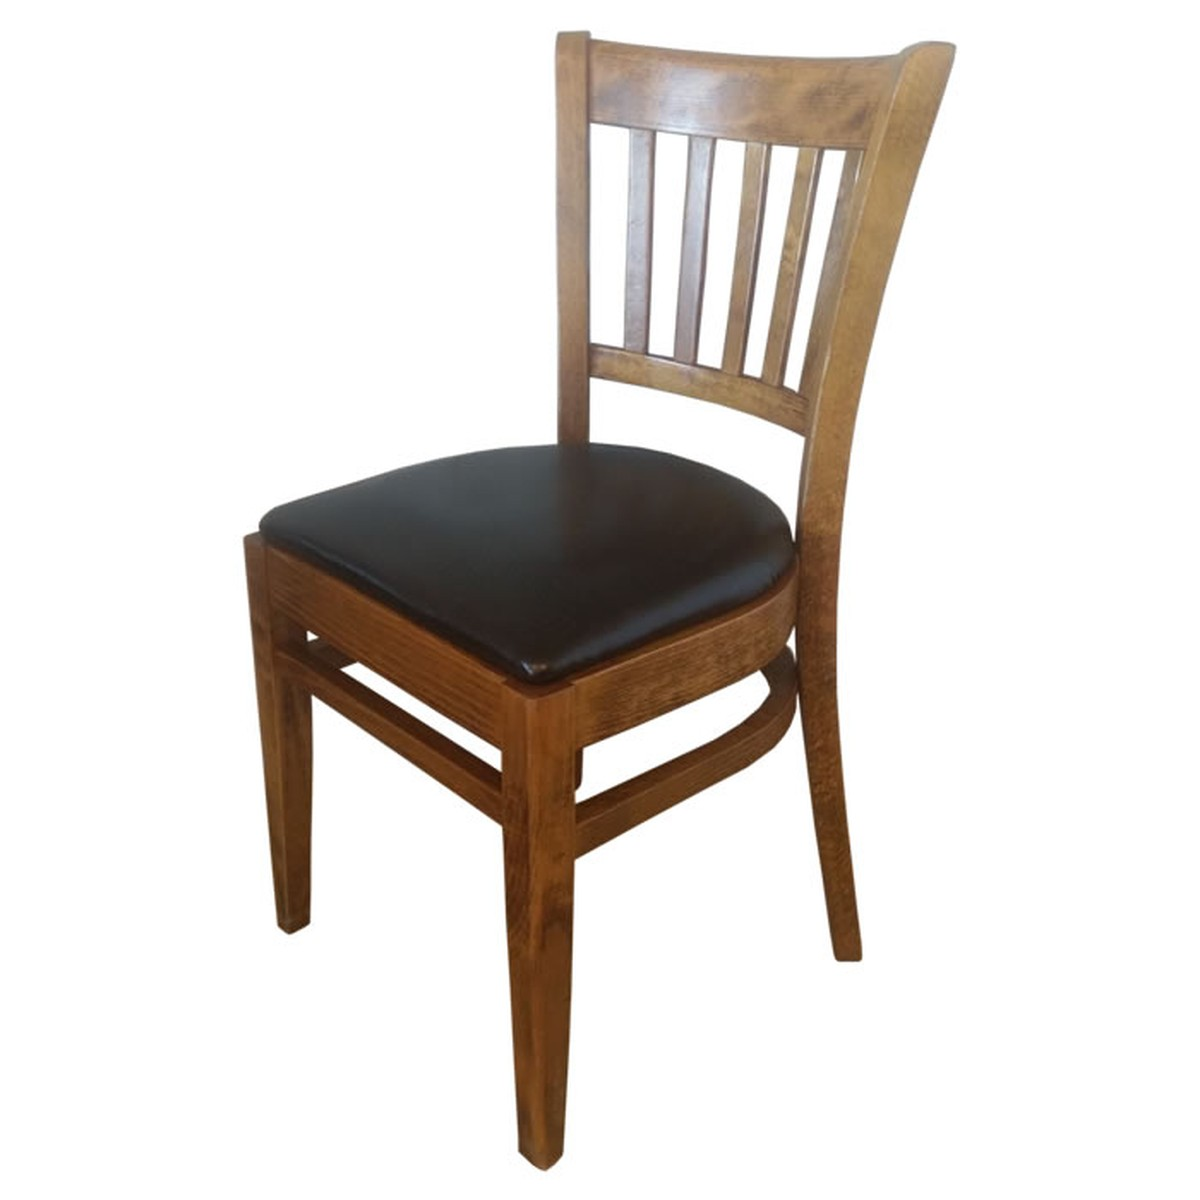 Restaurant Chairs For Sale Secondhand Chairs And Tables Pub And Bar Furniture